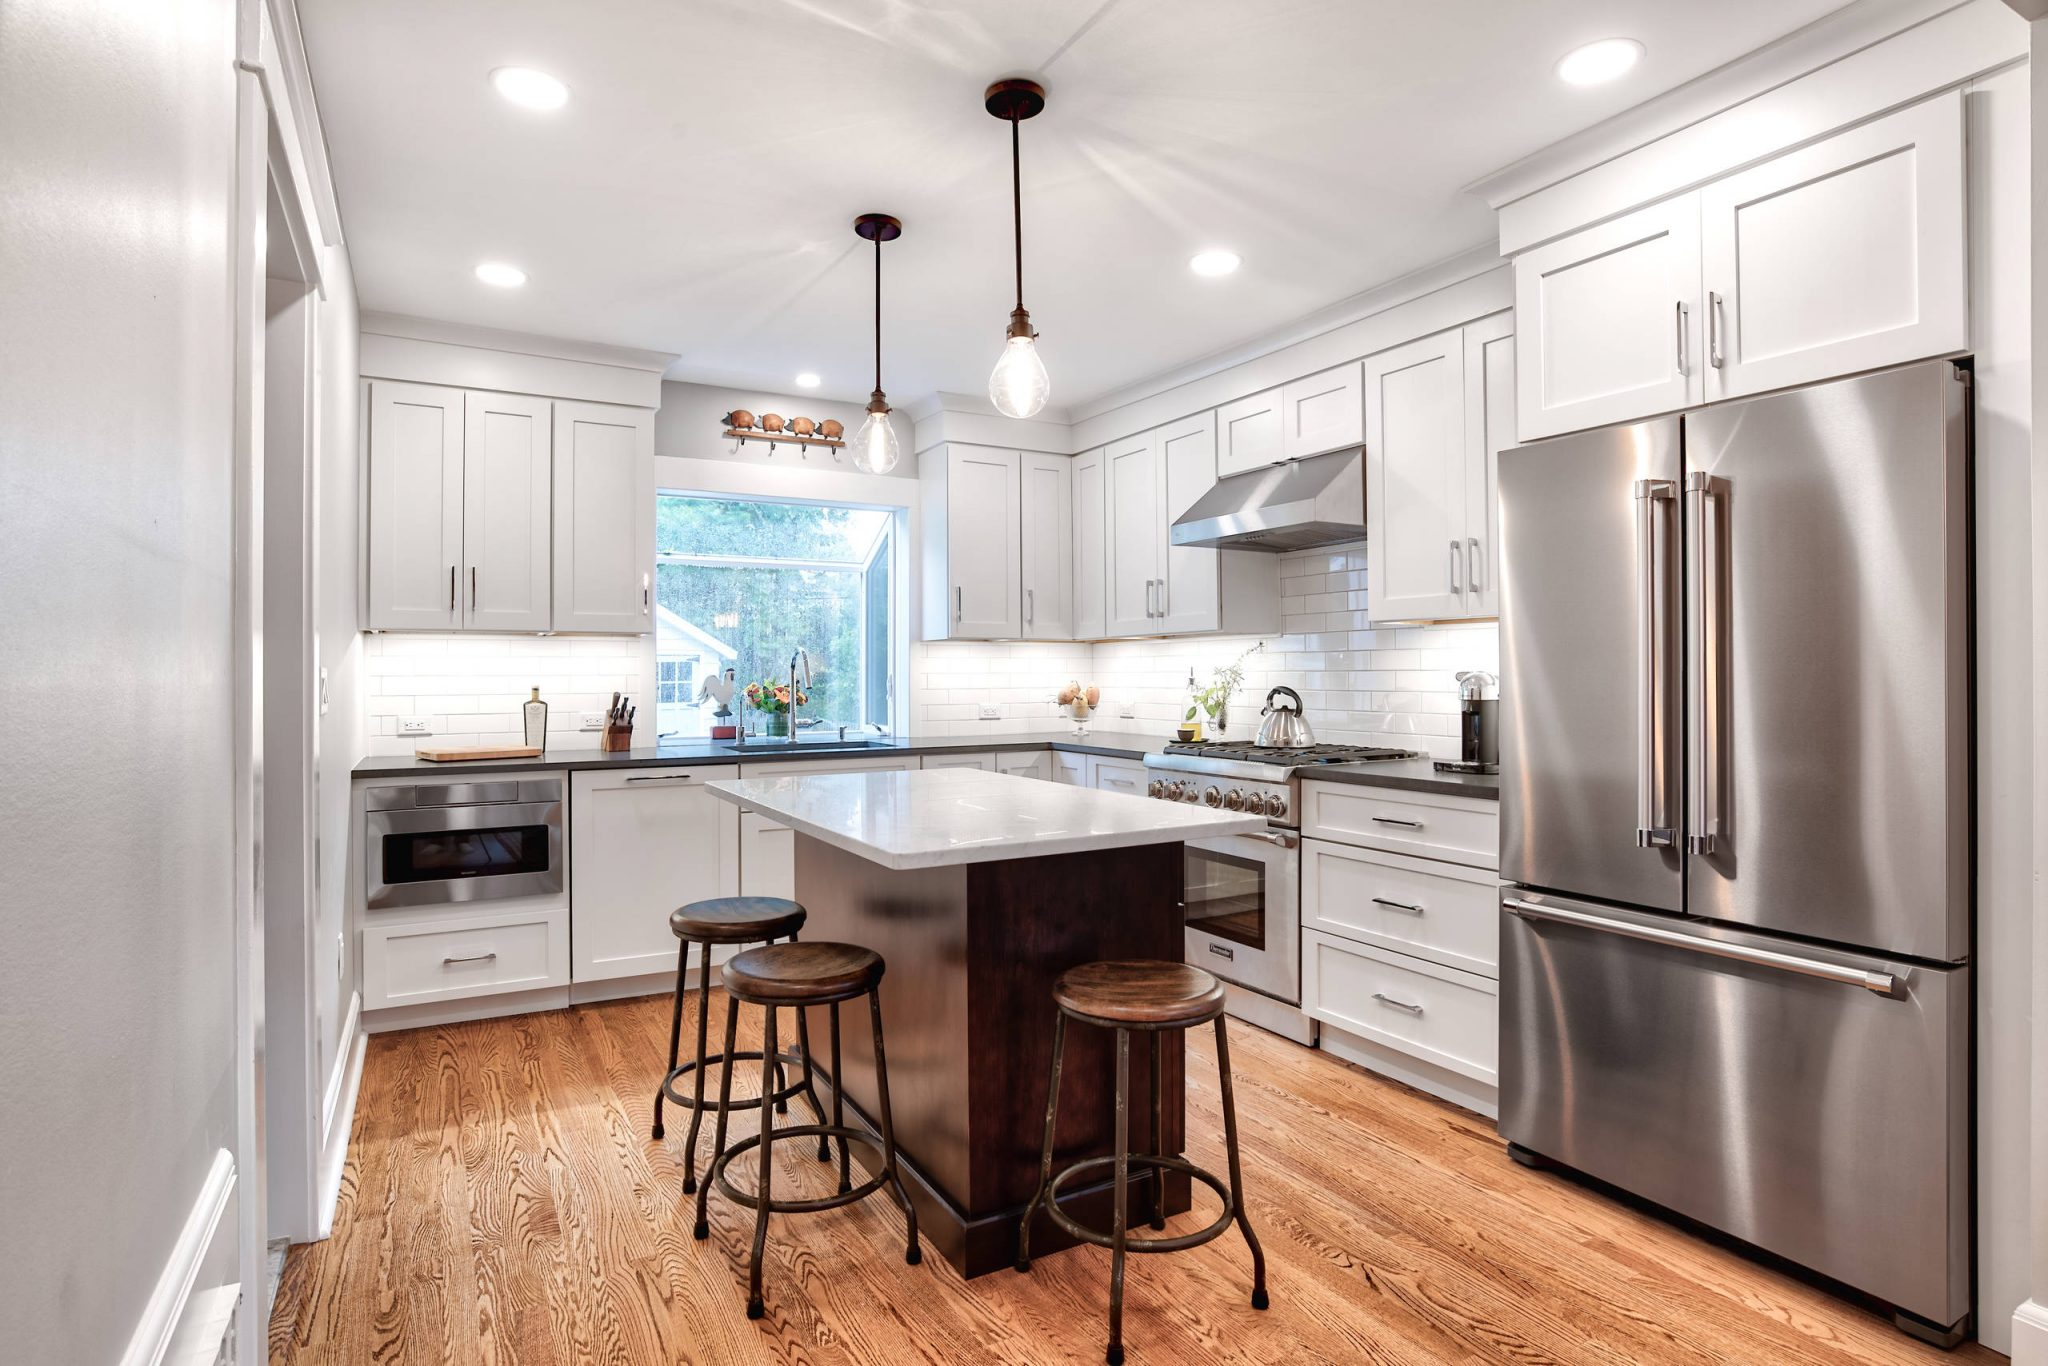 stainless steel appliances for kitchen remodel